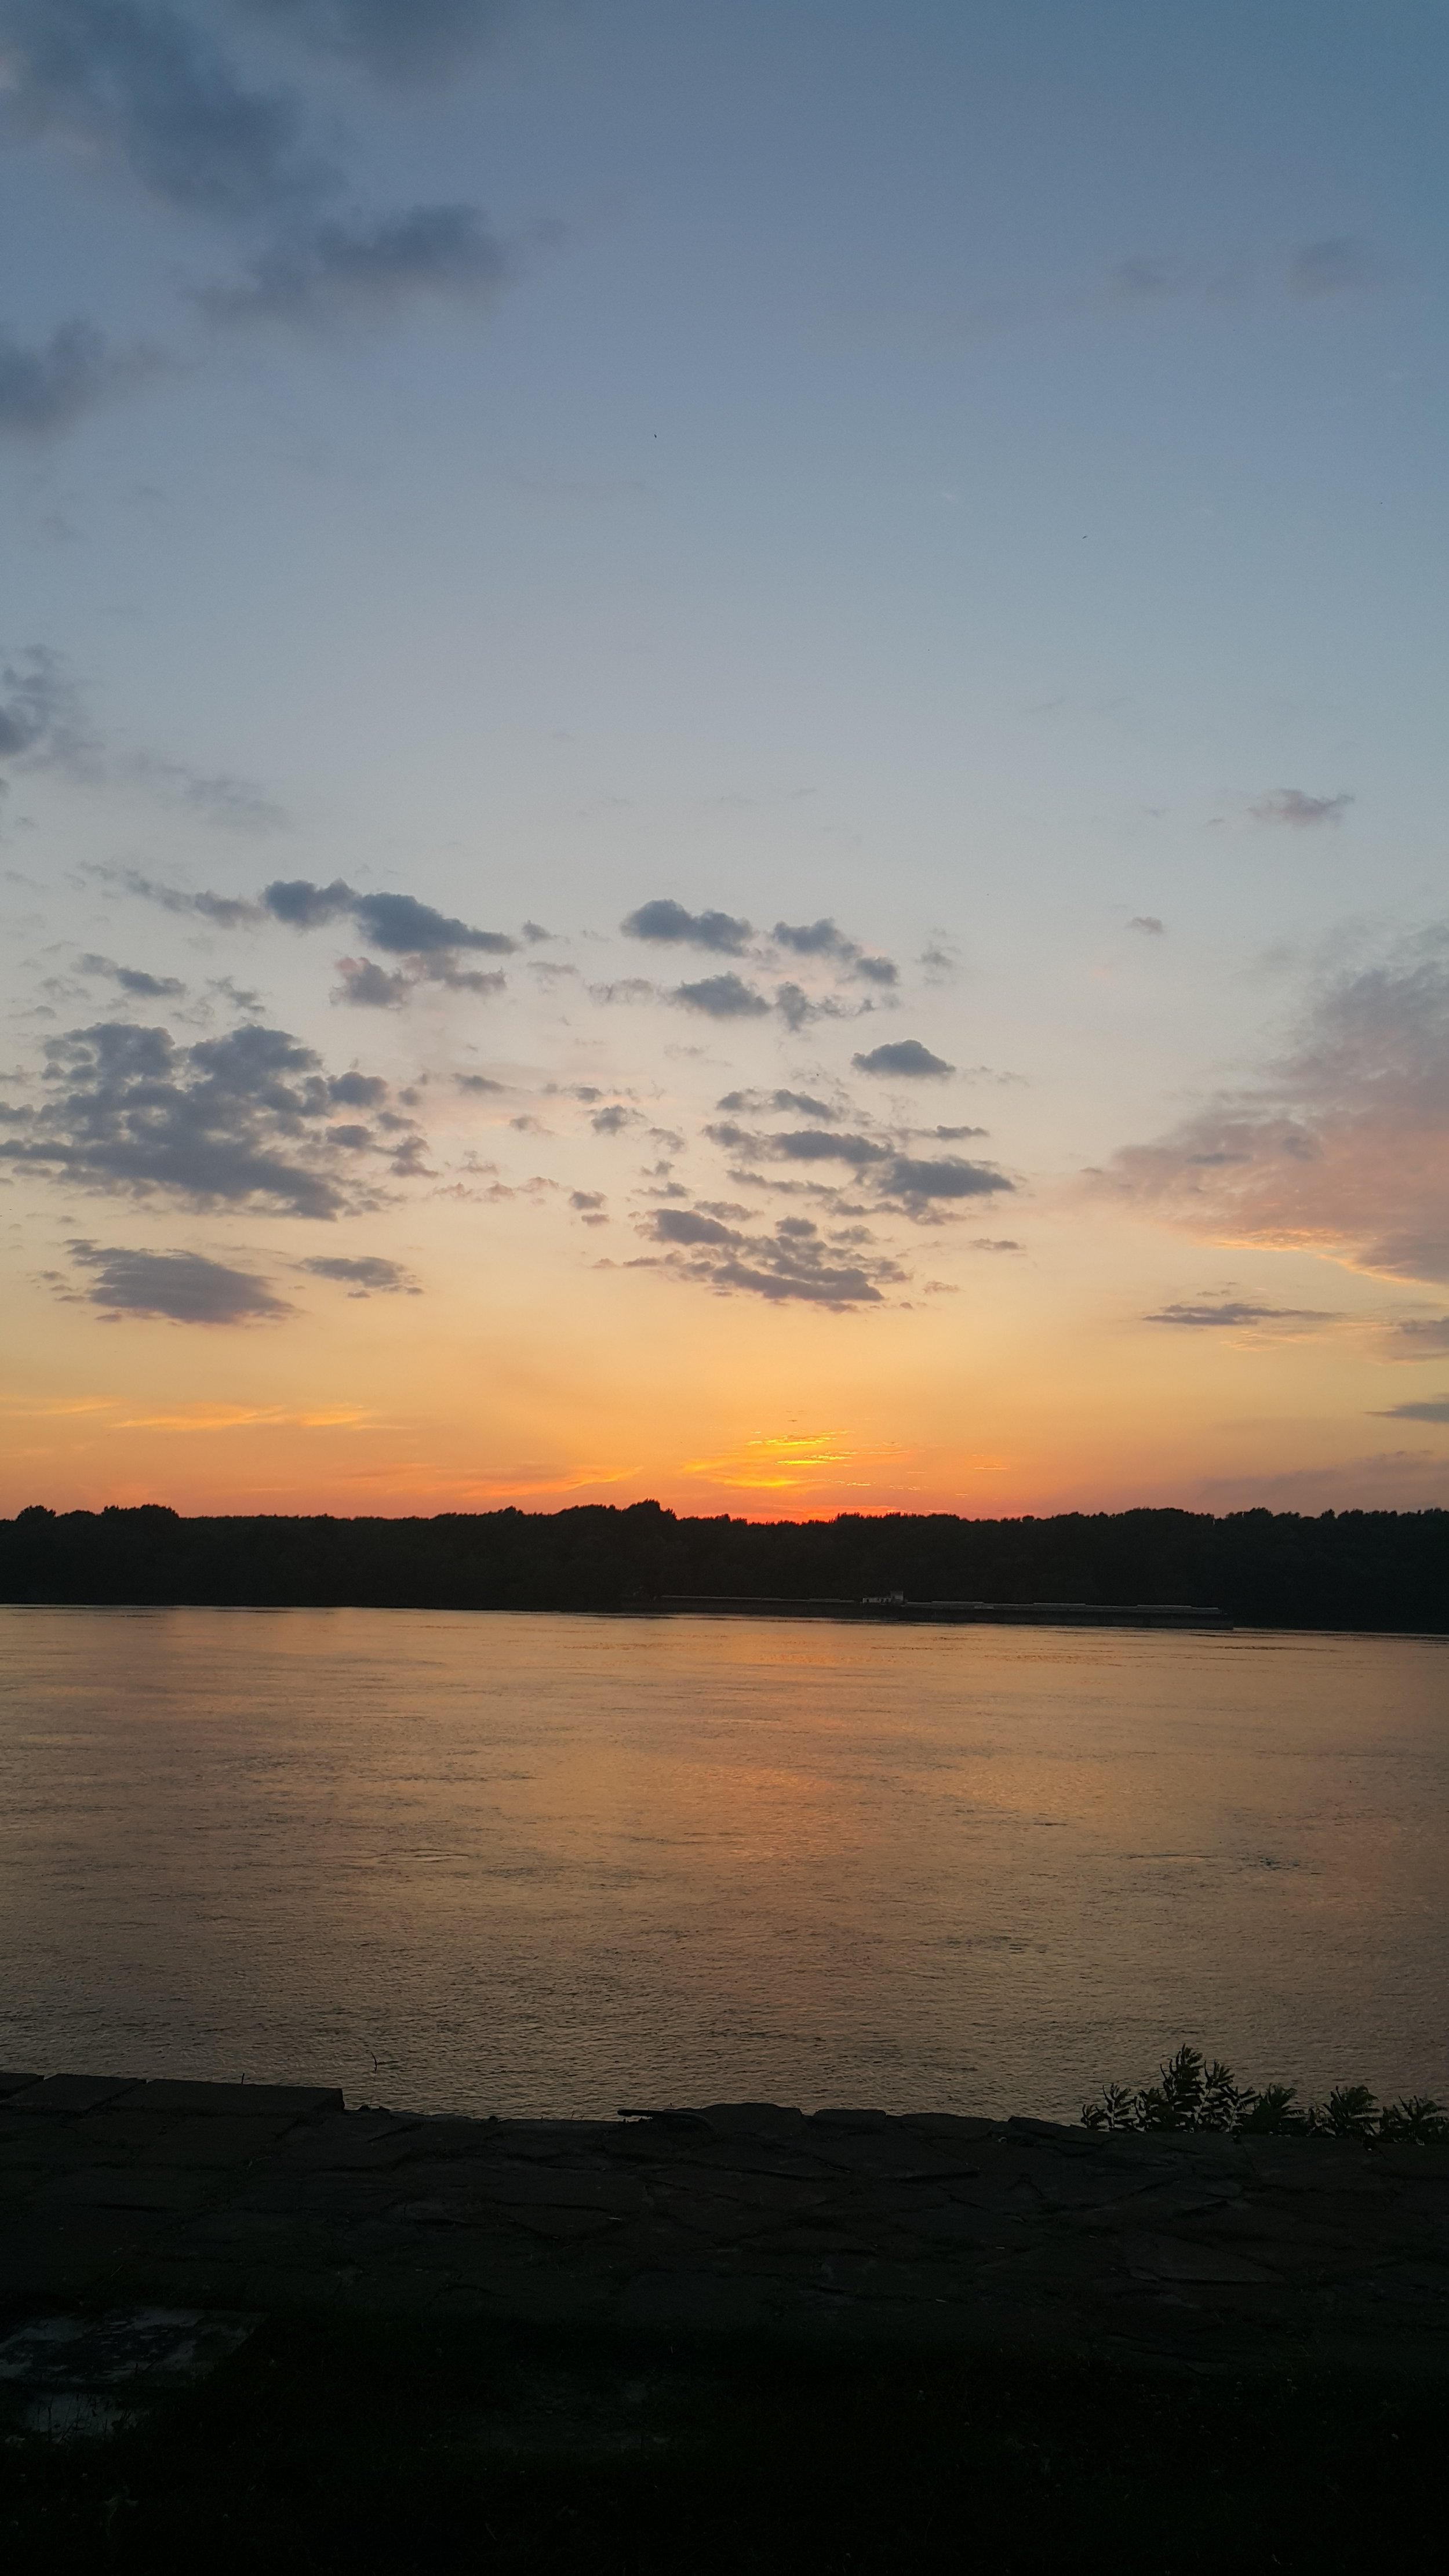 A sunset over Danube river in Ruse, Bulgaria